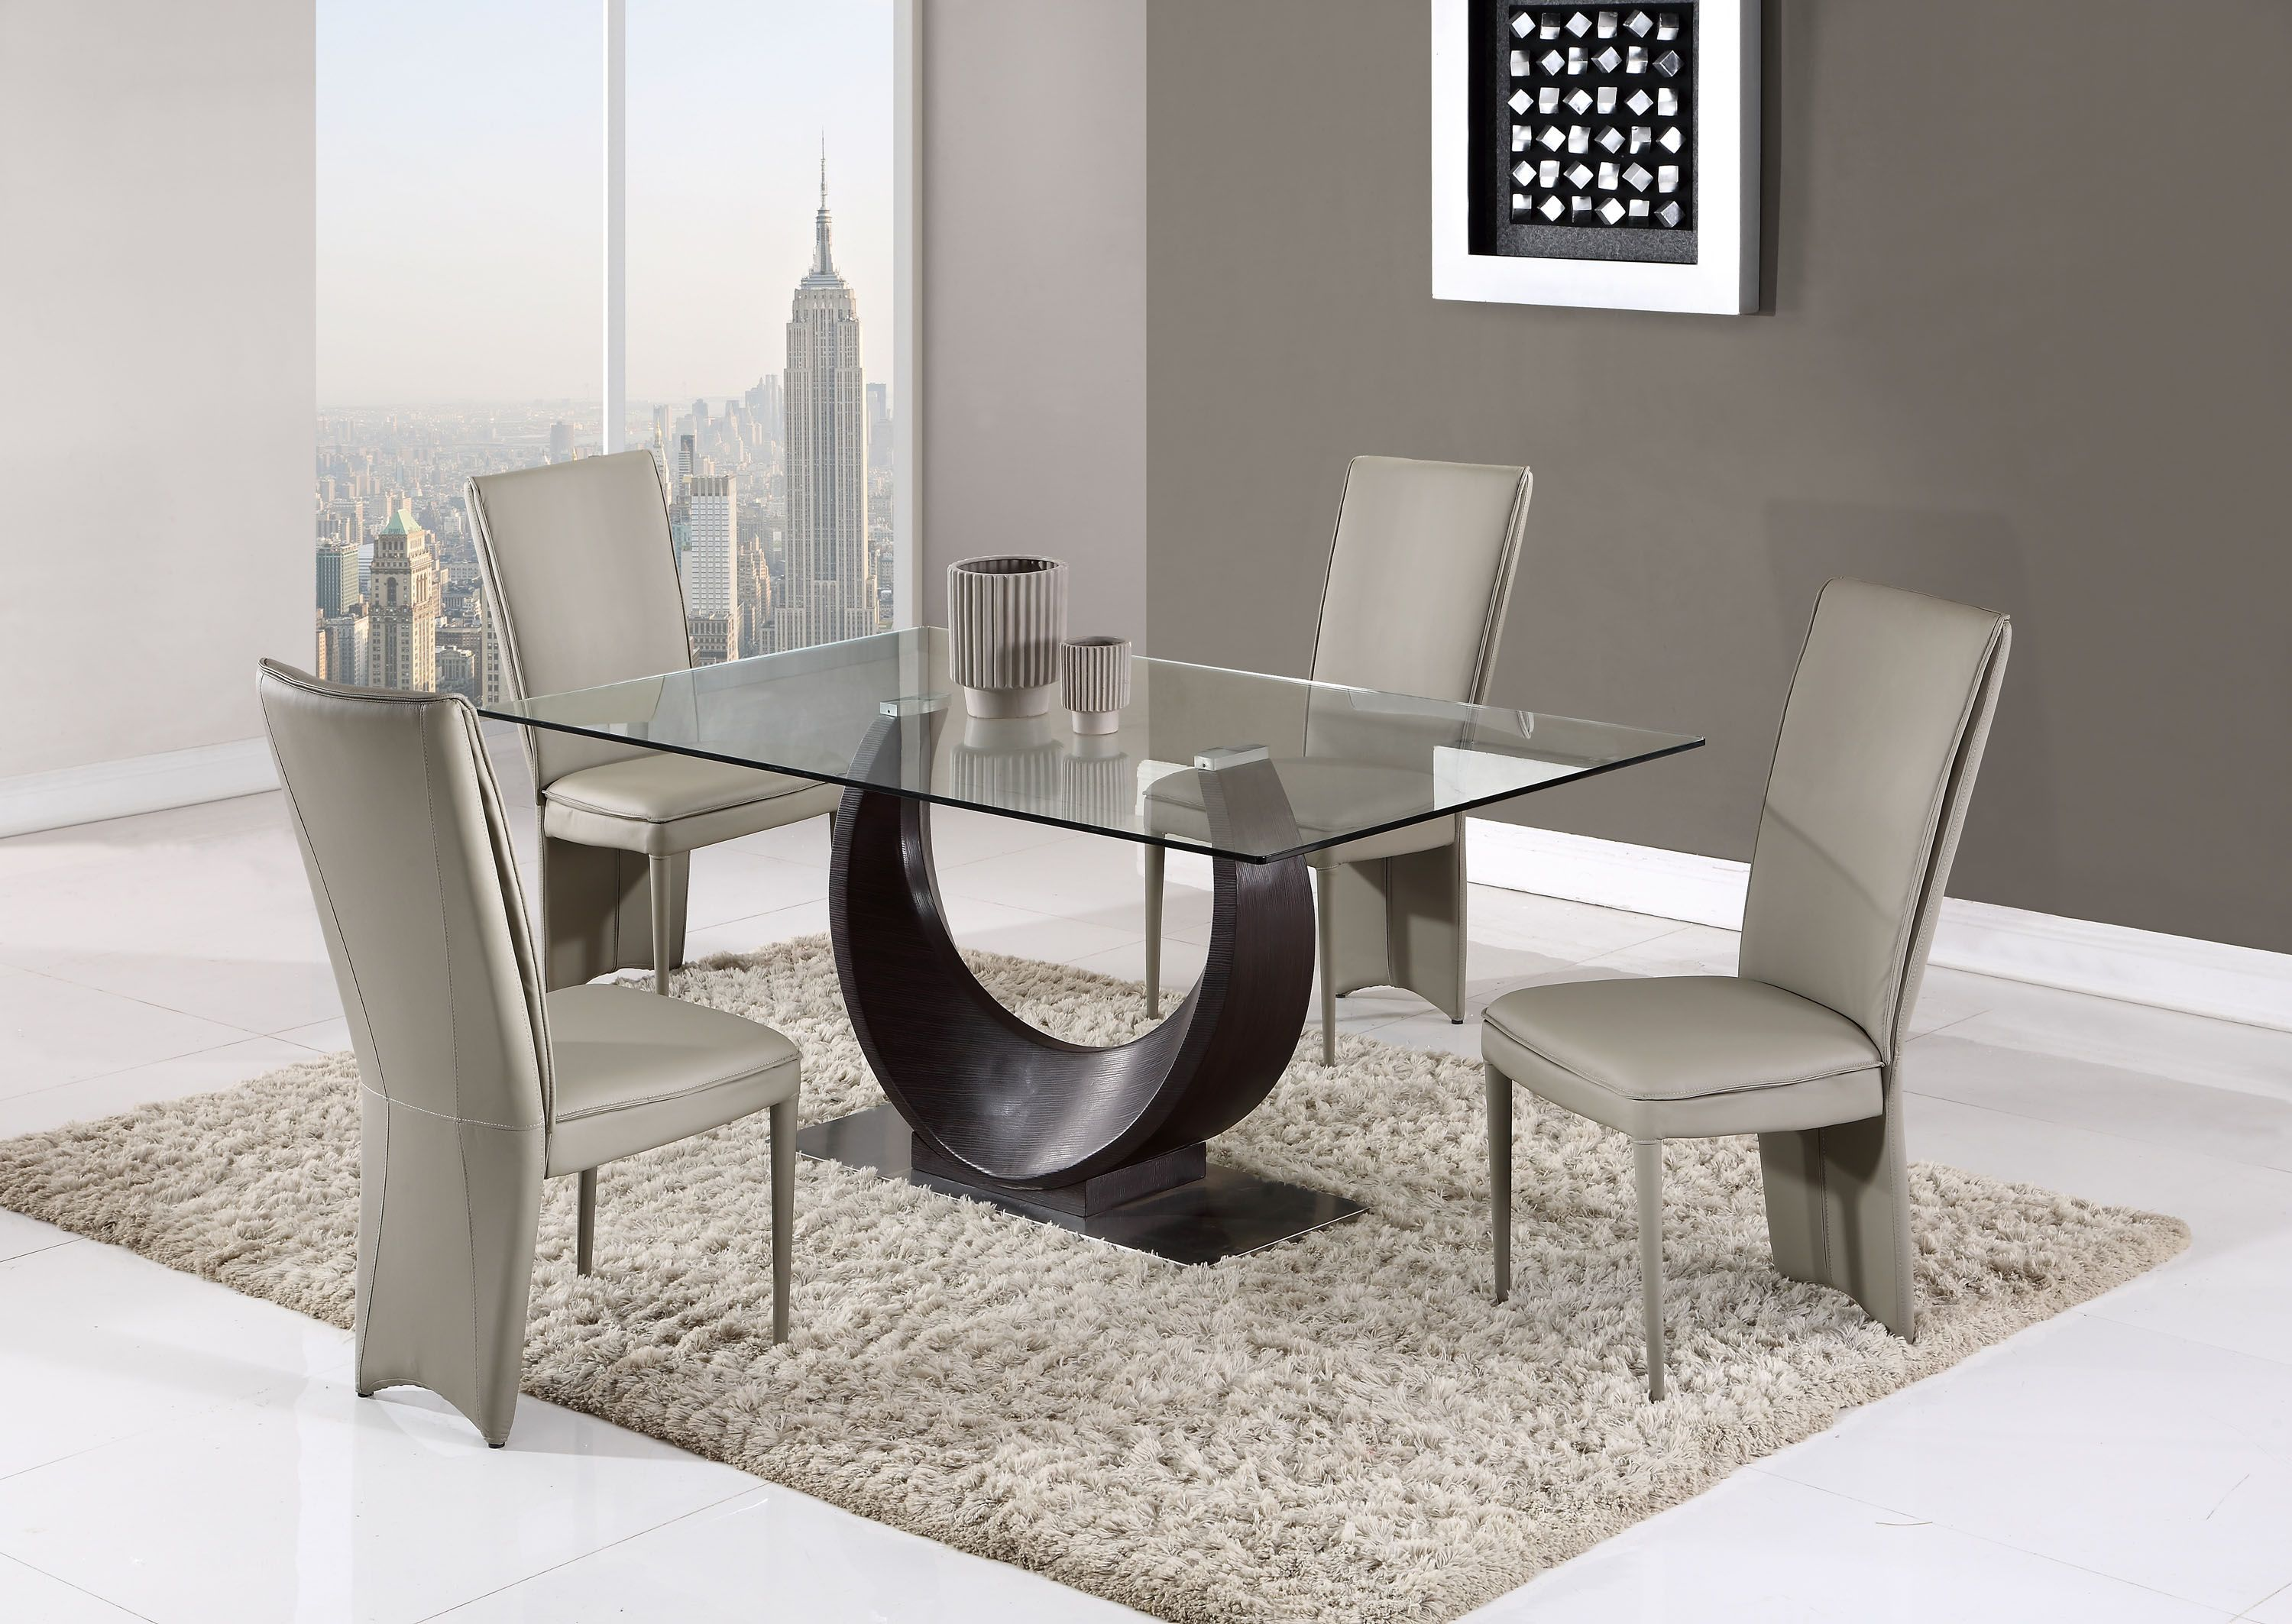 Contemporary Half Moon Glass Table With Taupe Side Chairs Dining Table Design Contemporary Glass Dining Room Global Furniture